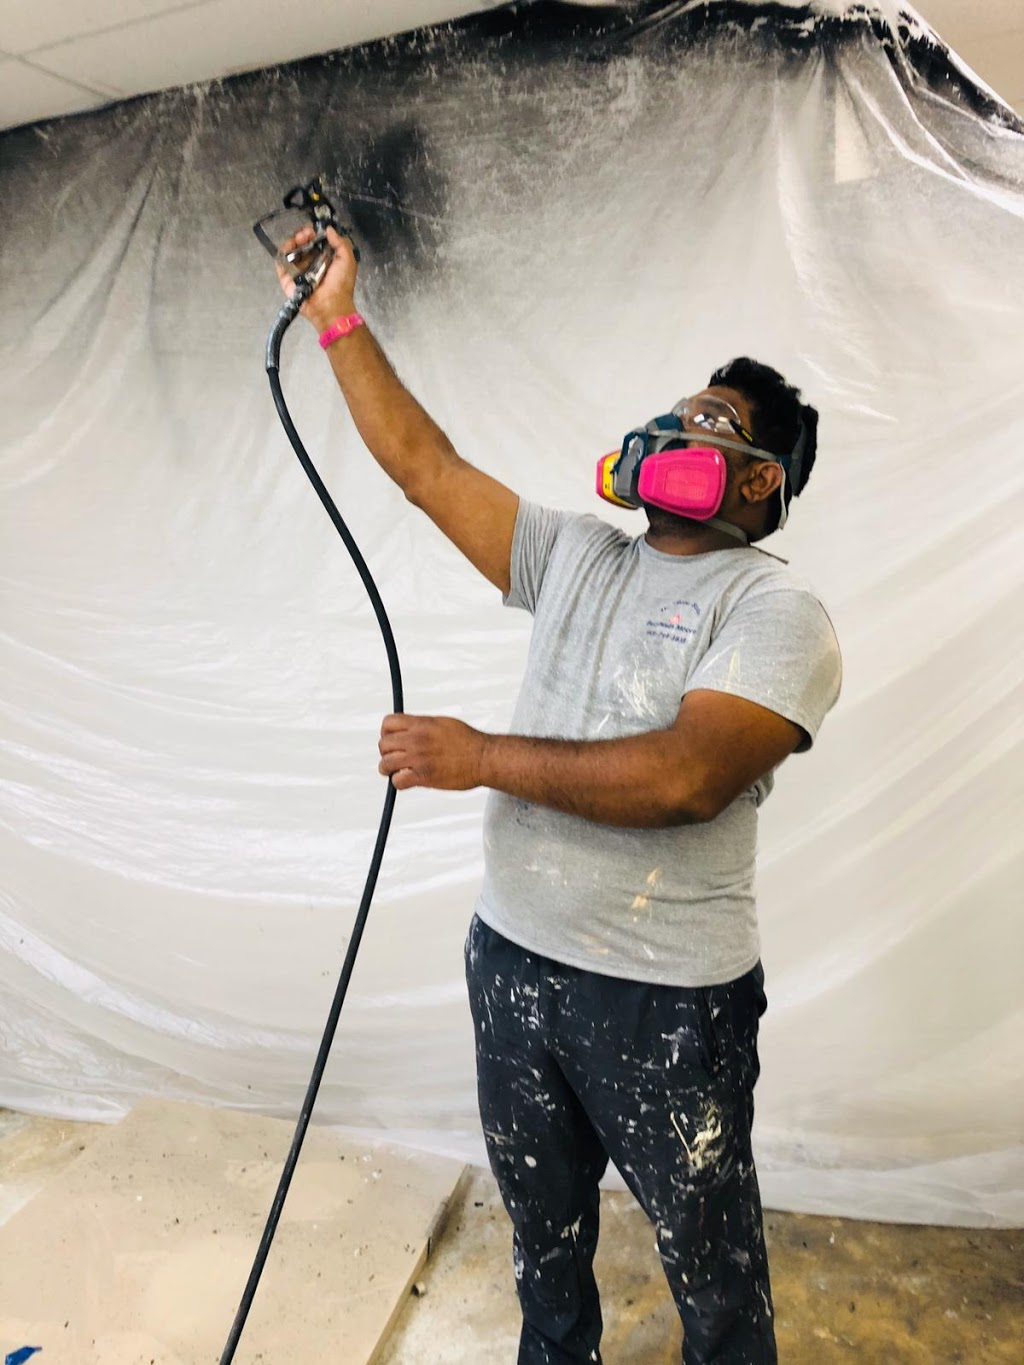 Dev Renovation & Painting | point of interest | 30 Ebby Ave, Brampton, ON L6Z 3S8, Canada | 6475275057 OR +1 647-527-5057